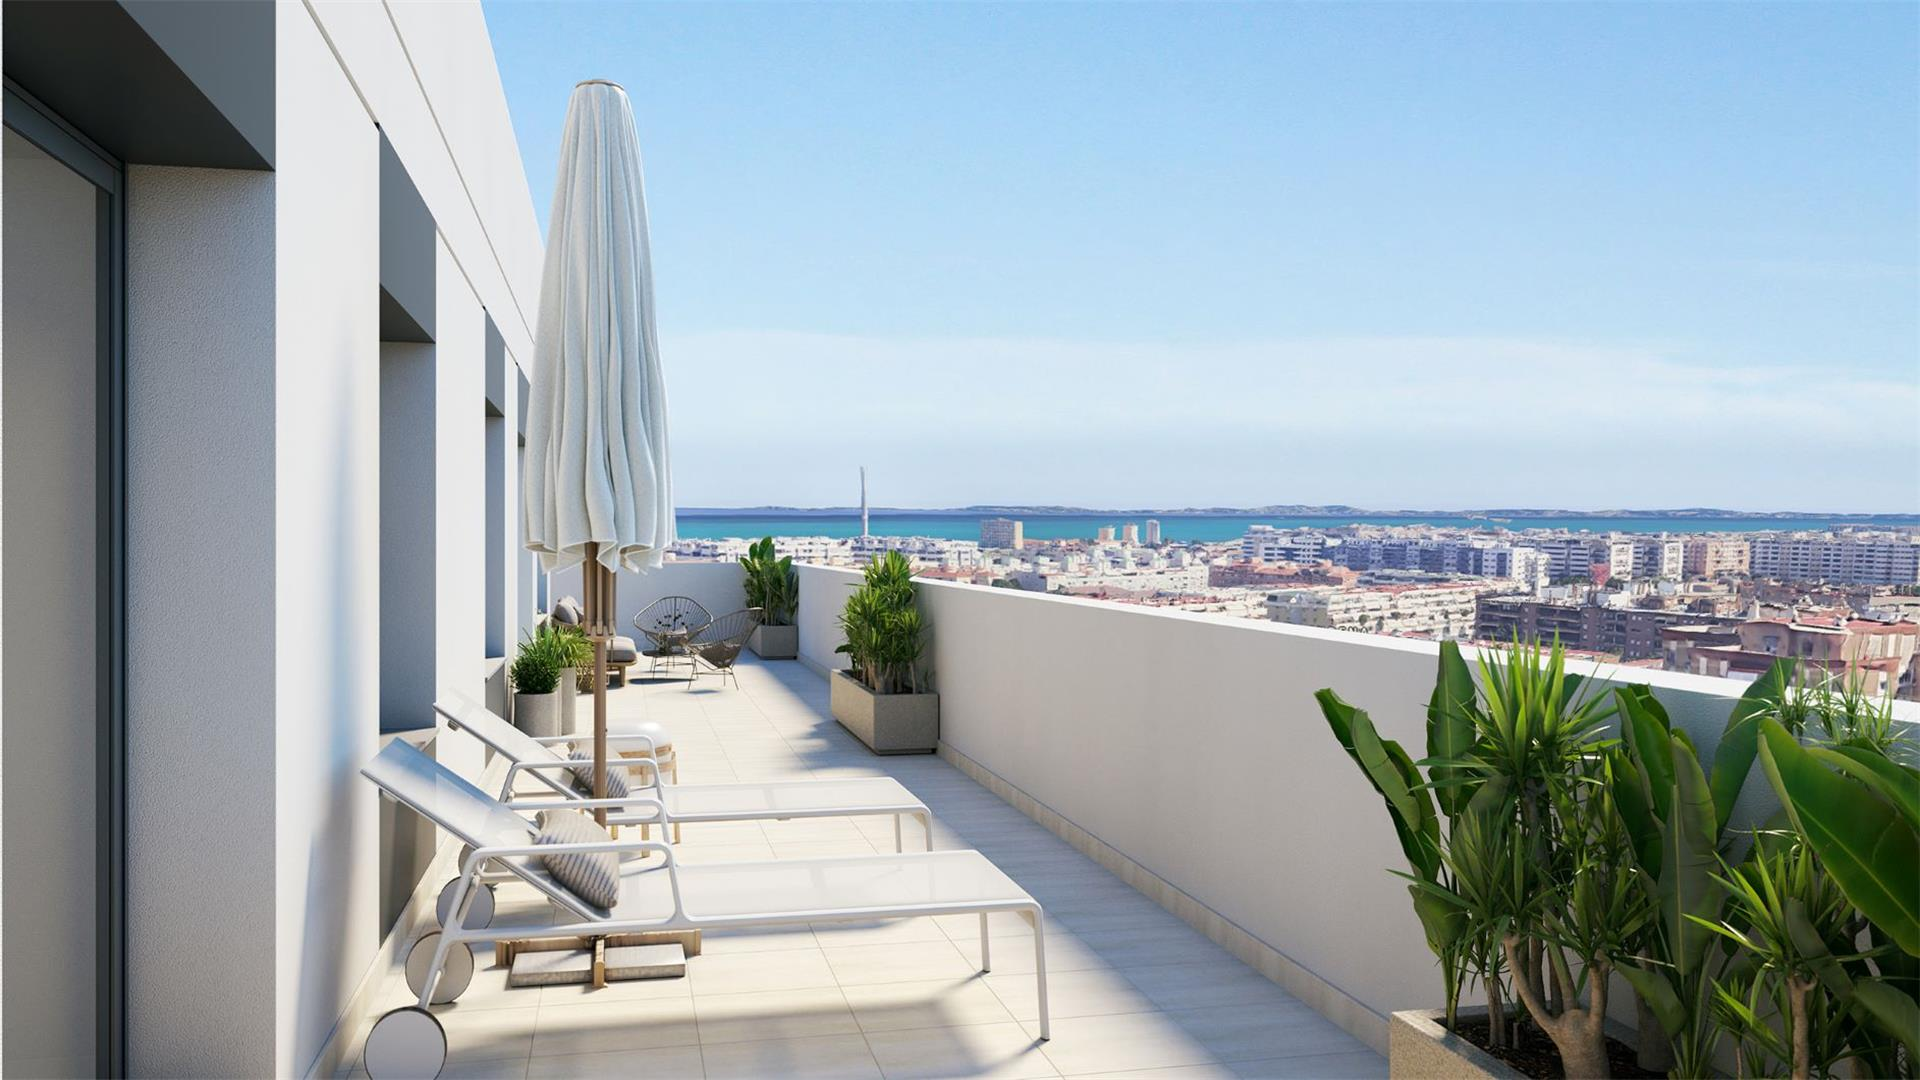 2 bedroom apartment in the center of Malaga - mibgroup.es